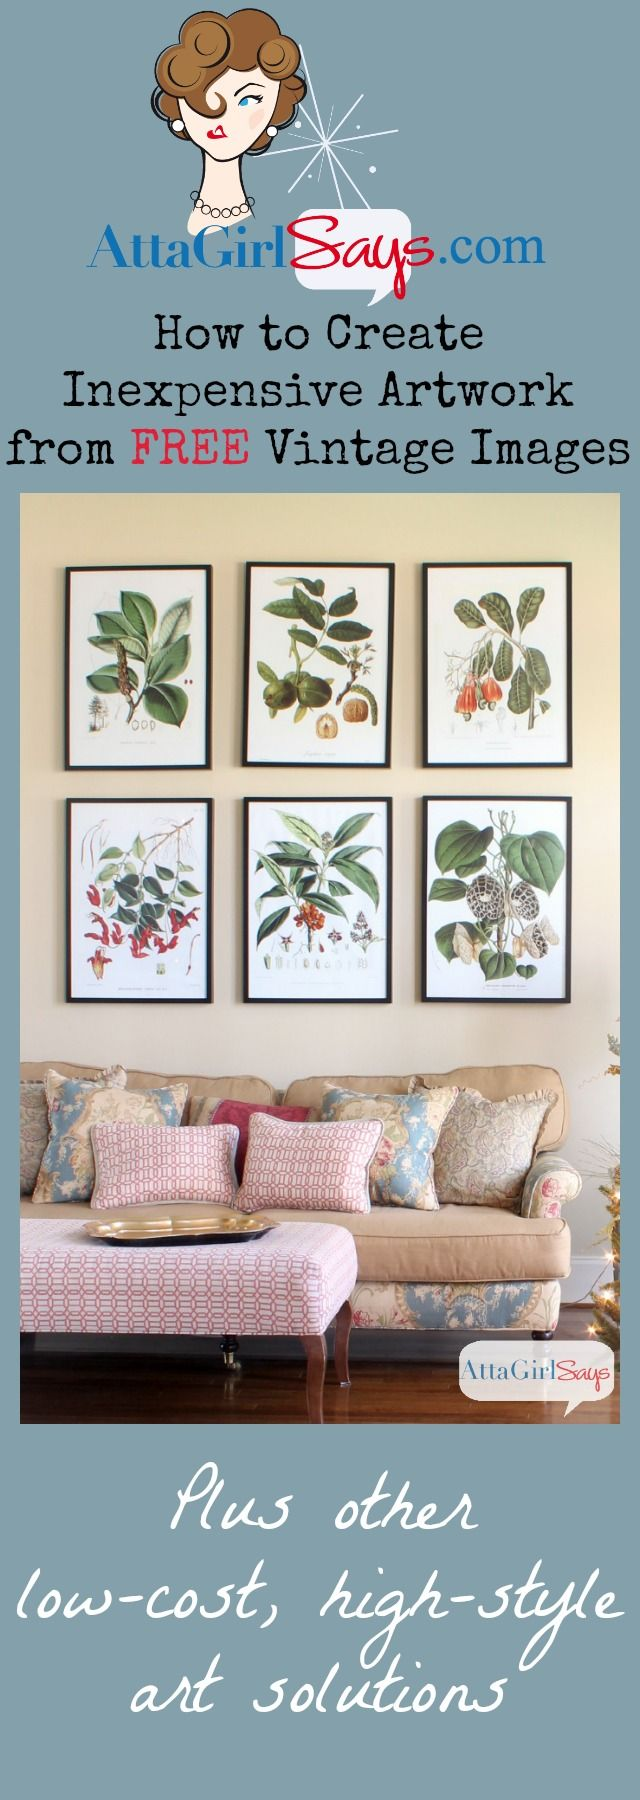 Creatve Inexpensive Artwork with Vintage Botanical Prints